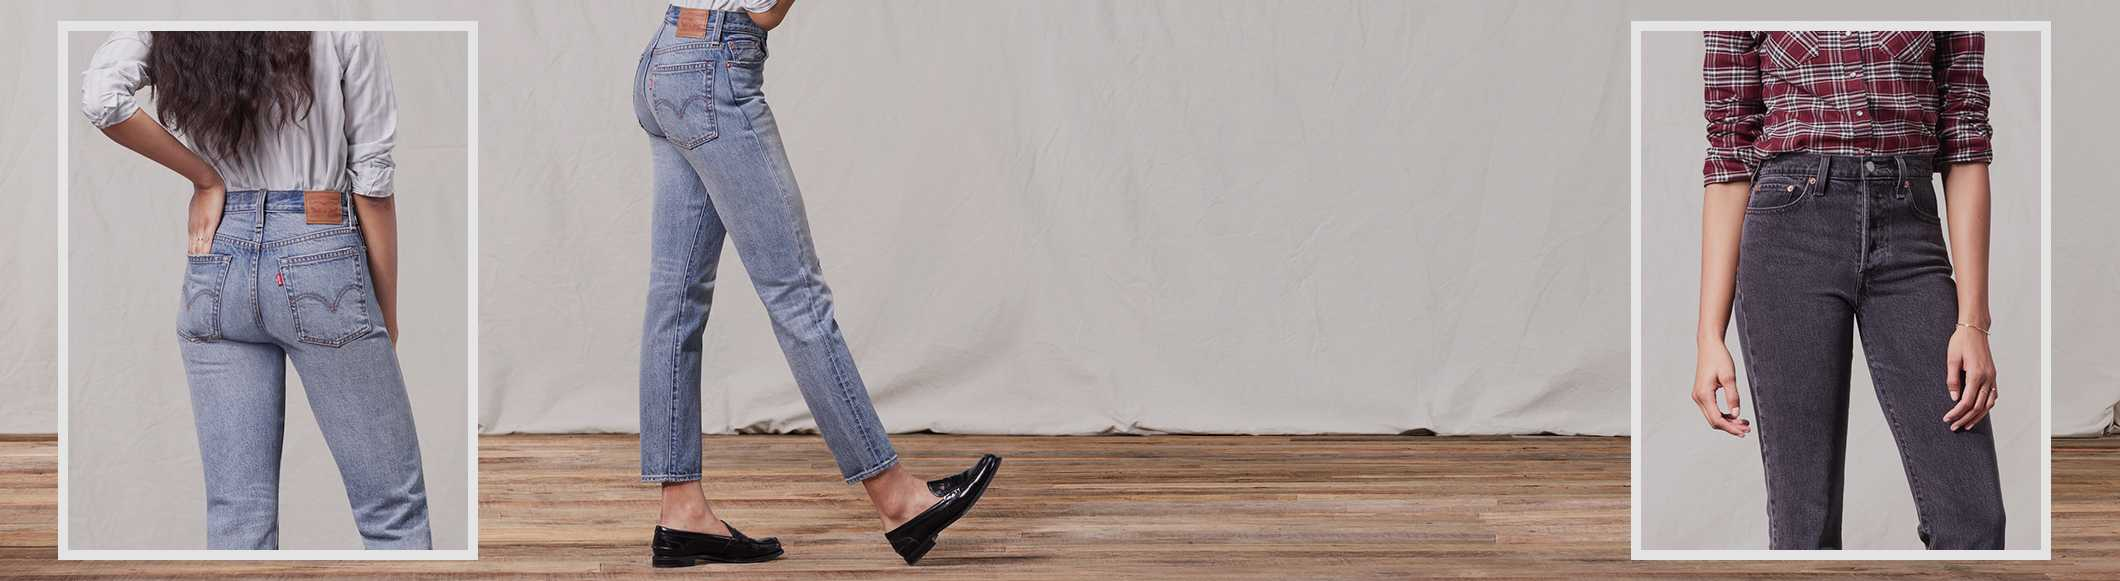 c694f32e4bc0 Levi's Wedgie Fit Jeans - Shop the Iconic Wedgie Jean | Levi's® US